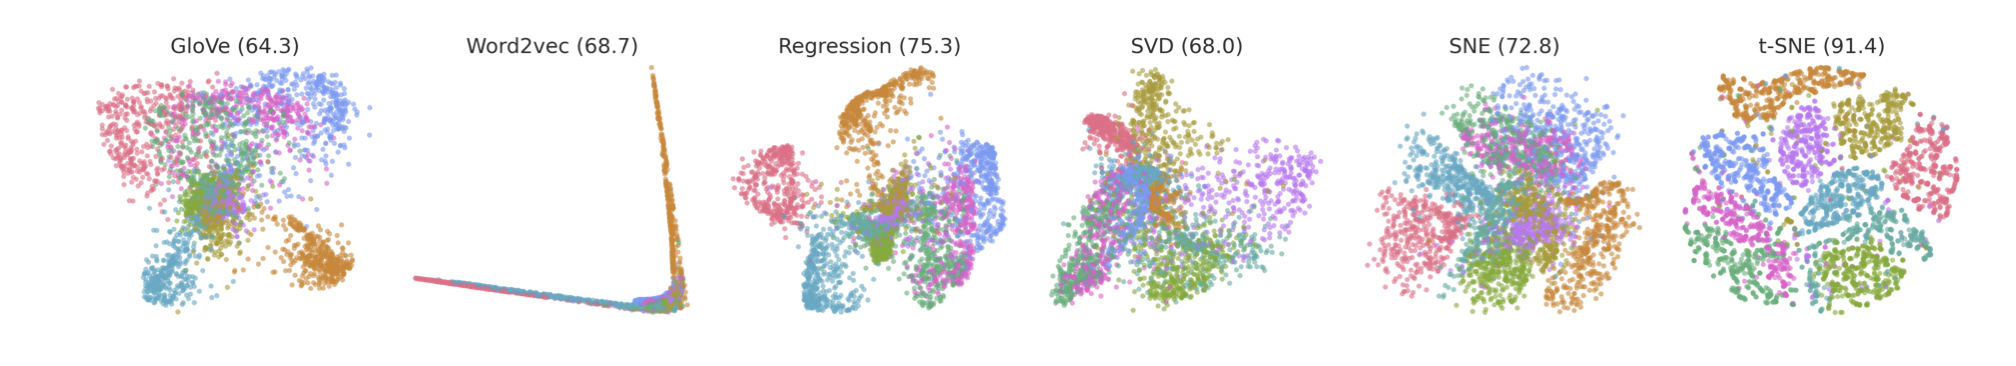 Our theory says that word embedding algorithms can be understood as manifold learning methods. Empirical results confirm this. Here, we show dimensionality reduction using both (word embedding and manifold learning) types of methods. Performance is quantified by percentage of 5-nearest neighbors sharing the same digit label. The resulting embeddings demonstrate that metric regression is highly effective at this task, outperforming metric SNE and beaten only by t-SNE (91% cluster purity), which is a visualization method specifically designed to preserve cluster separation. All word embedding methods including SVD (68%) embed the MNIST digits remarkably well and outperform classic manifold learning baselines of PCA (48%) and Isomap (49%).